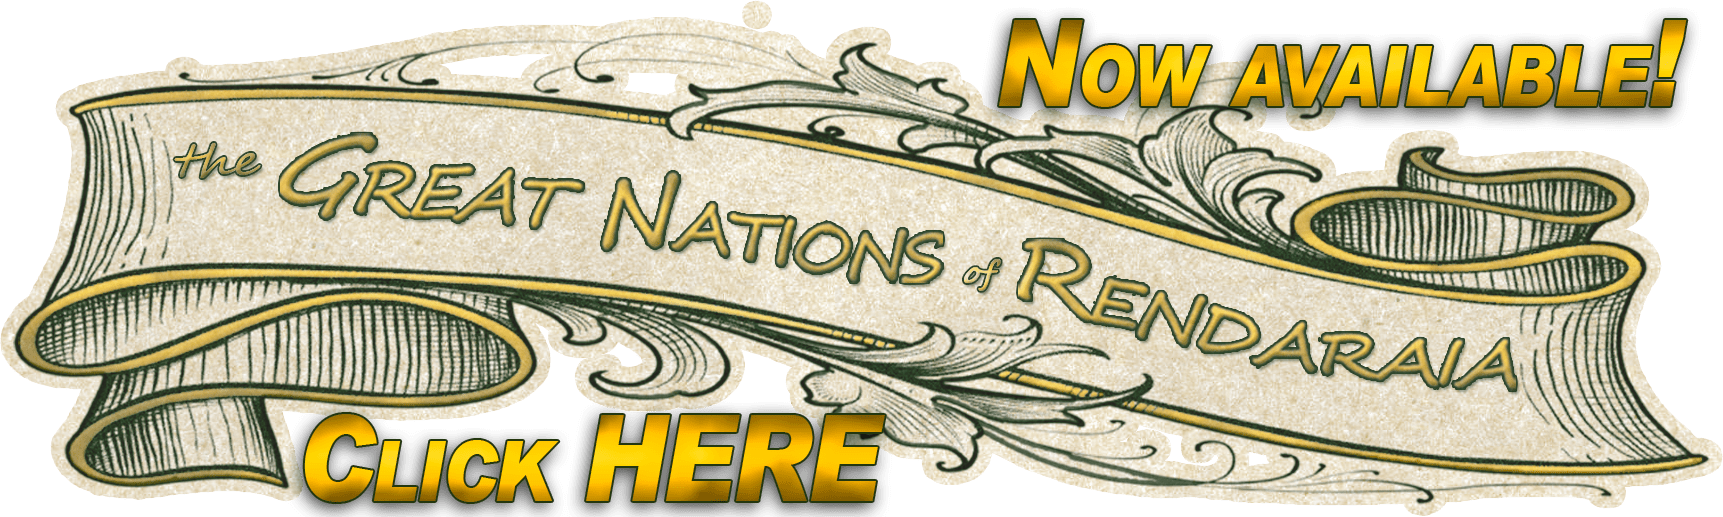 Children of Gaia: The Great Nations of Rendaraia - Now Available